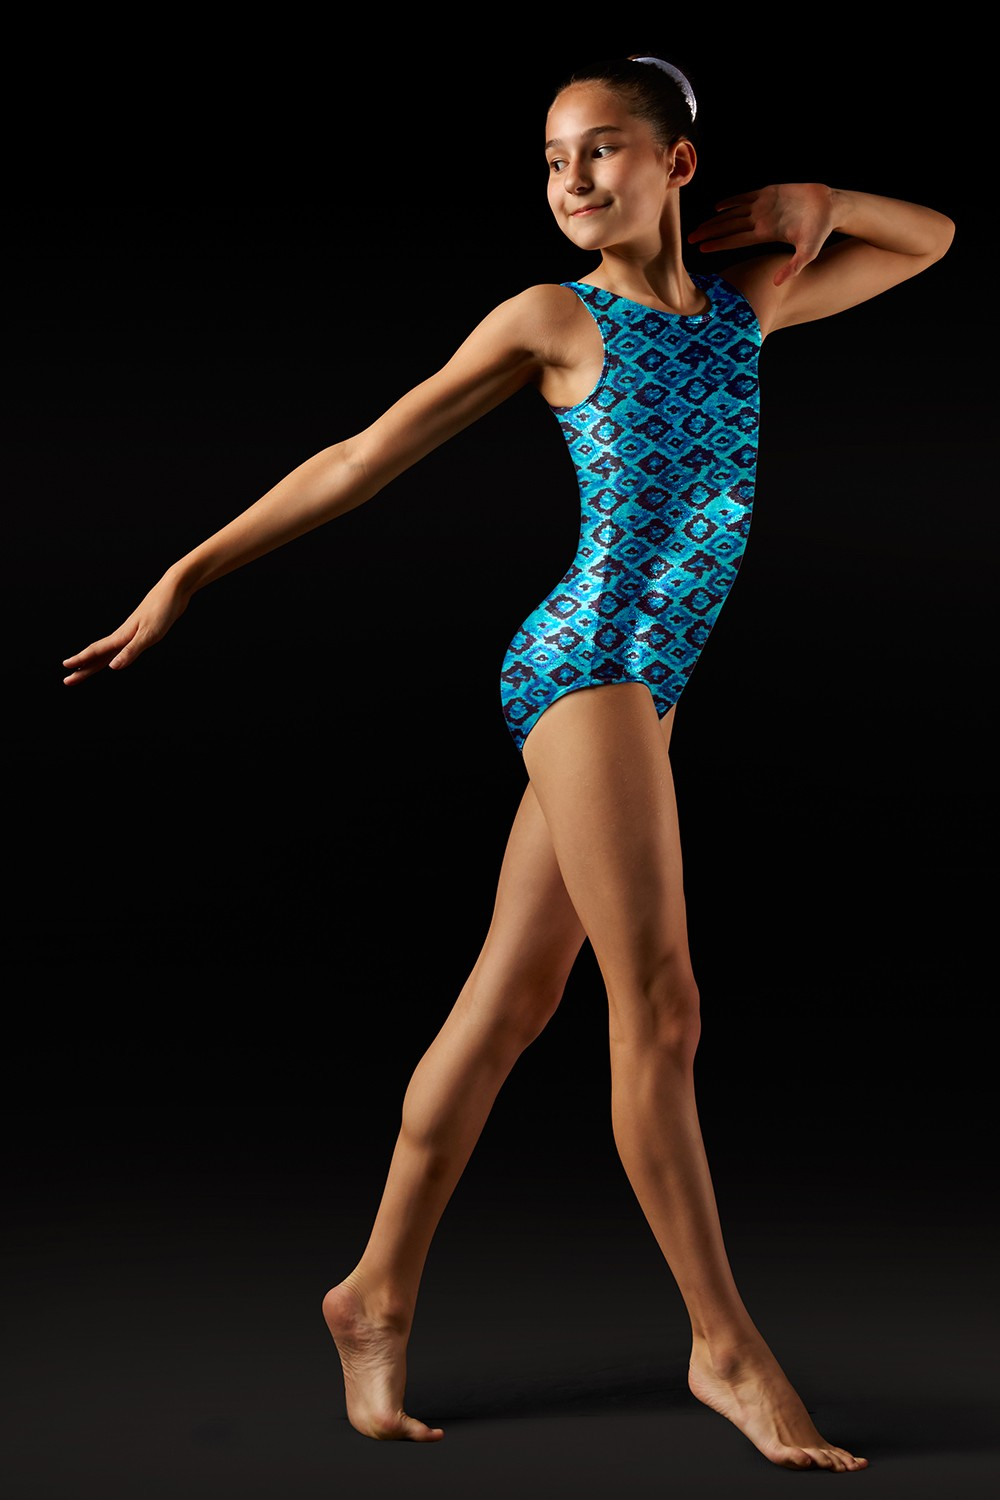 Maillot De Tirantes Anchos Girl's Gymnastics Leotards